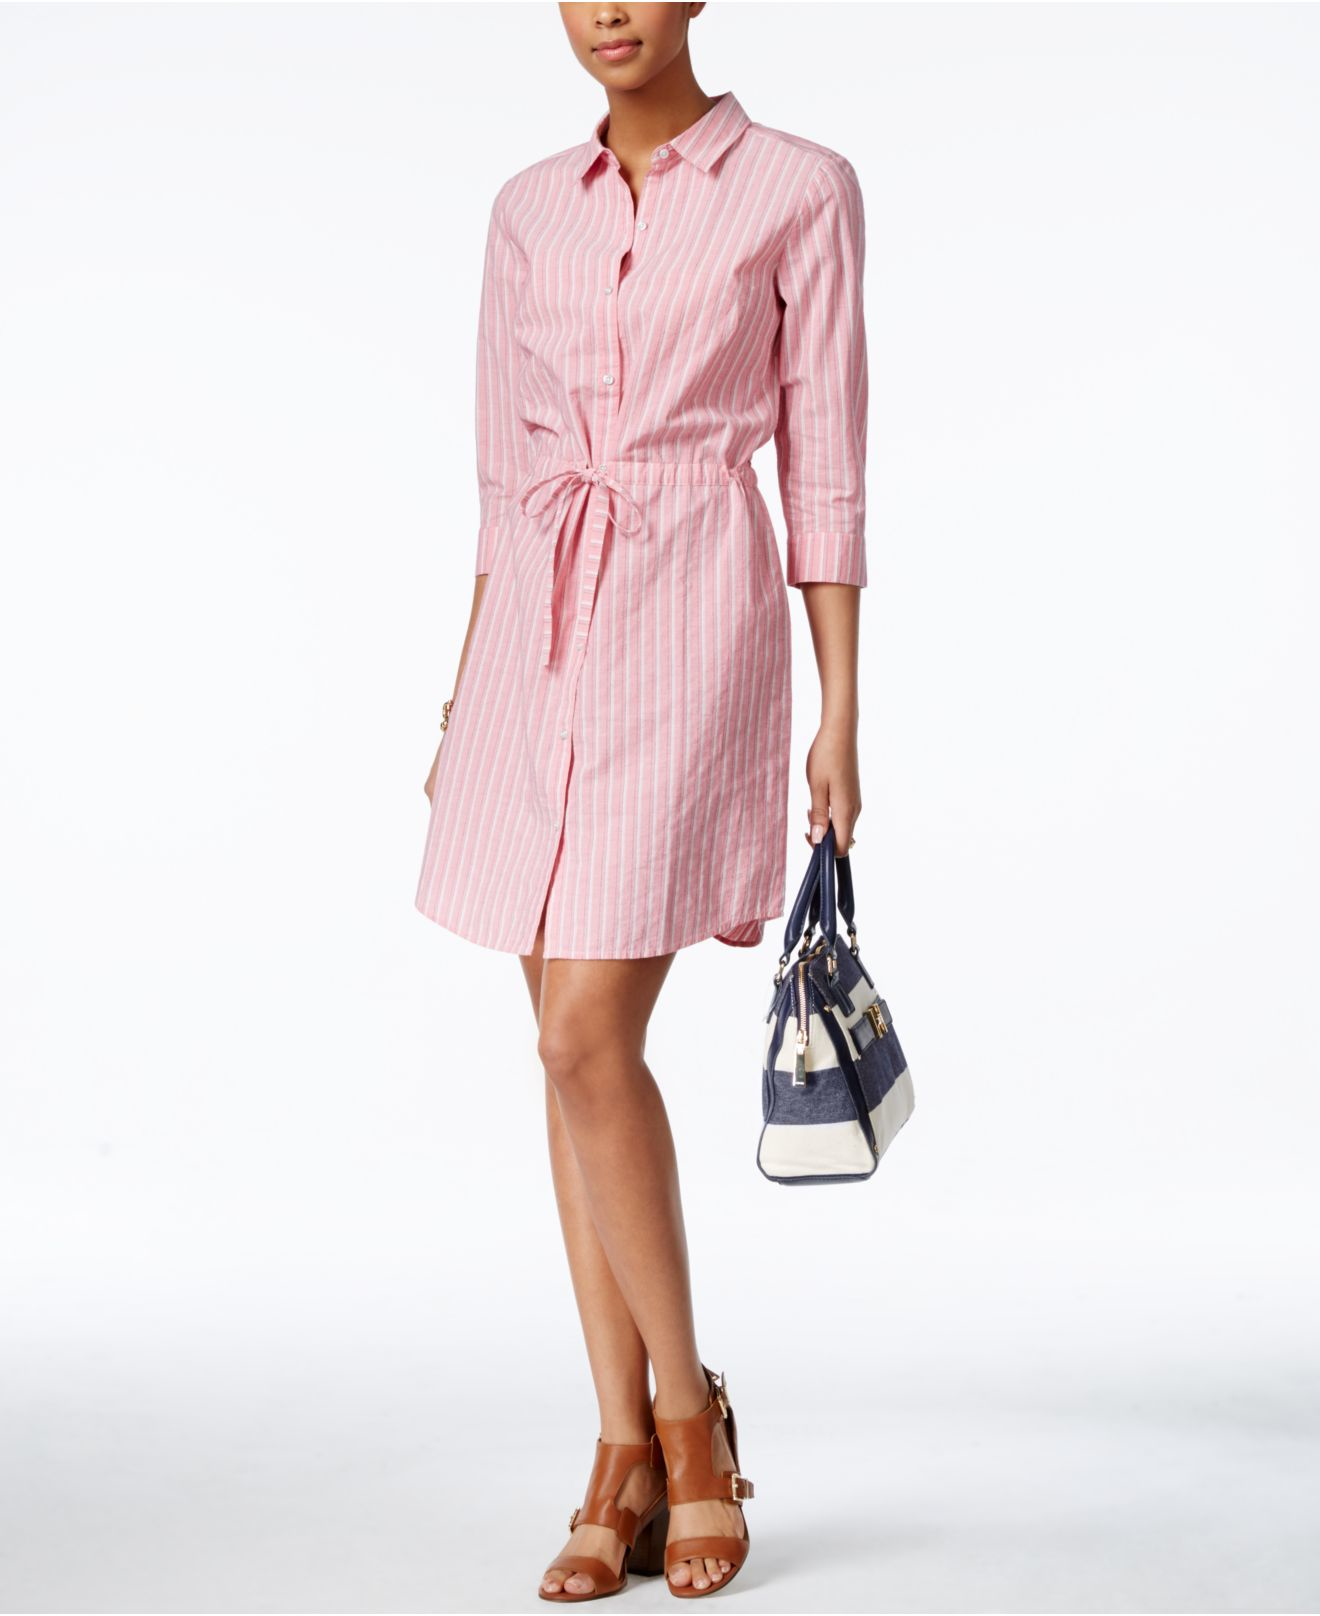 d6ee3eb3ae1 Lyst - Tommy Hilfiger Striped Belted Shirtdress in Red